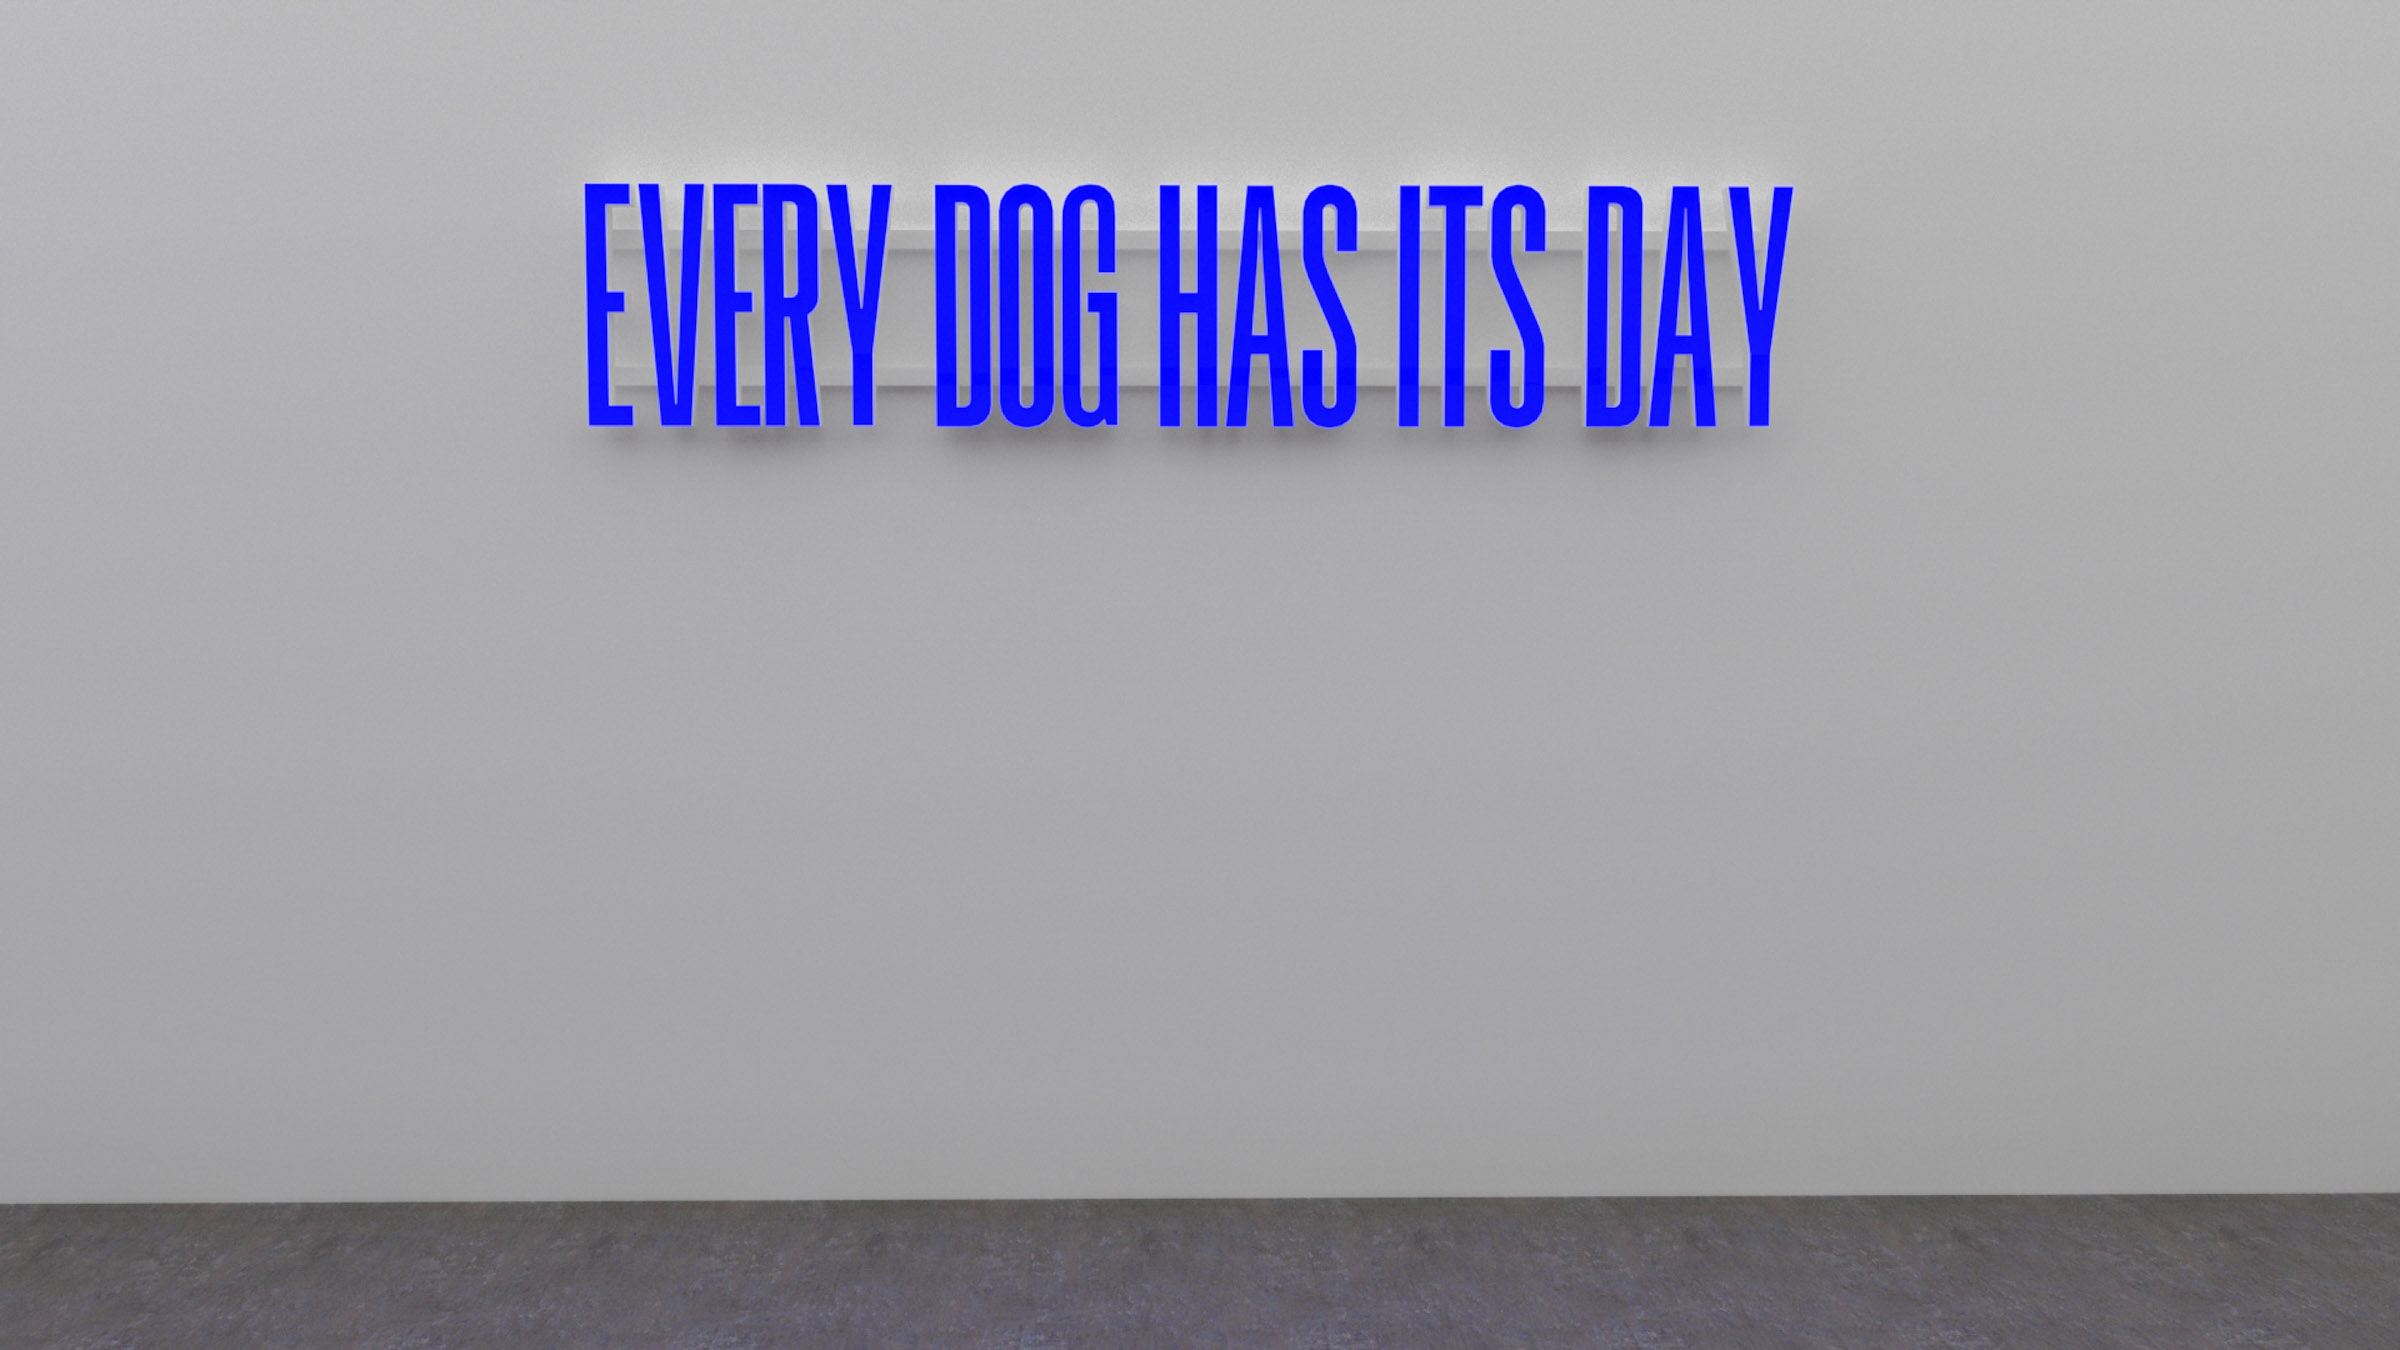 5 min read: Every dog has its day